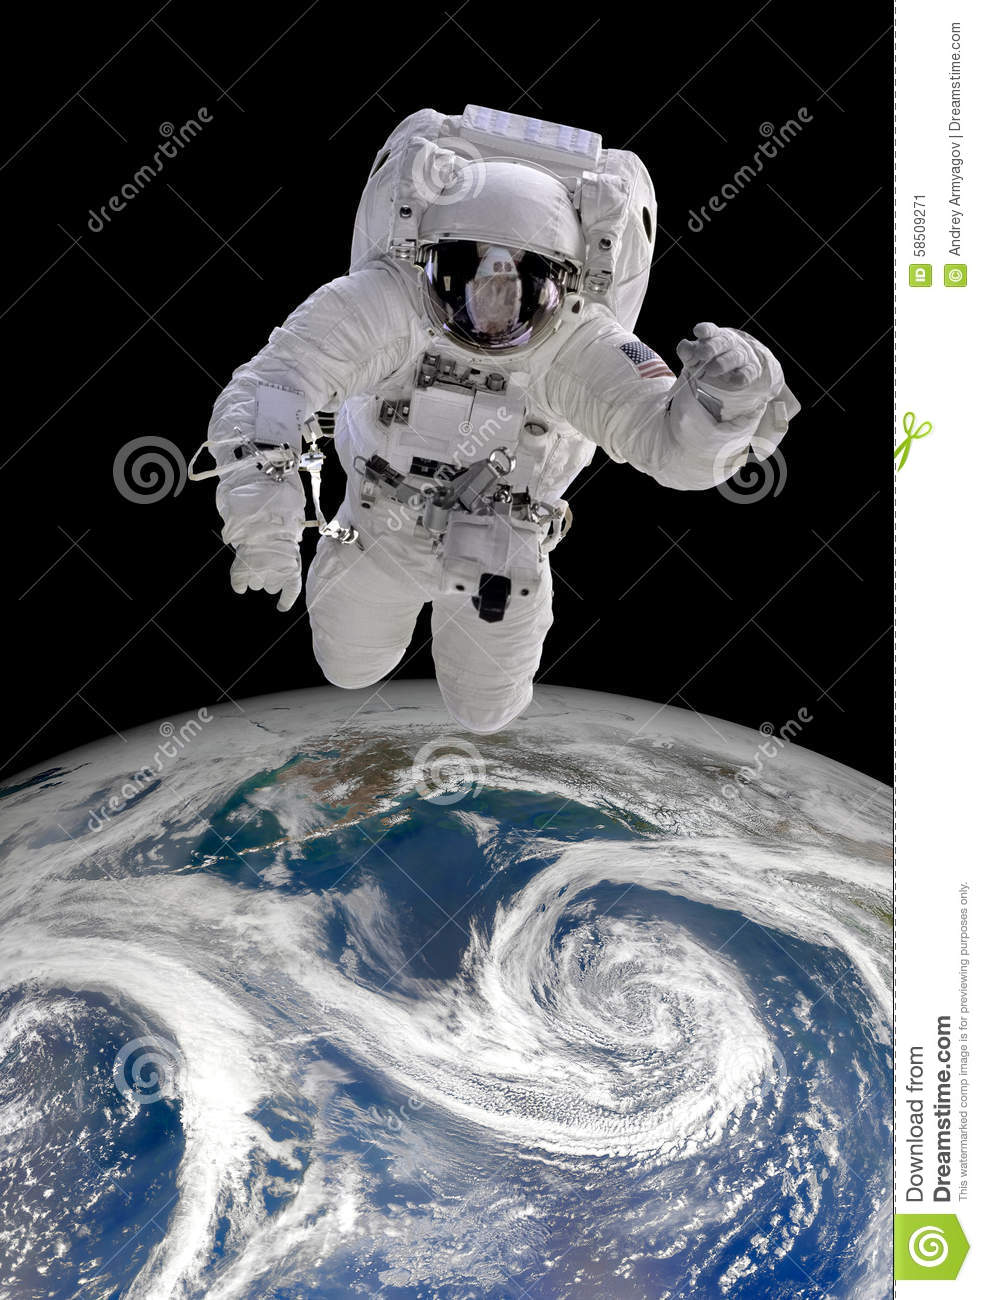 Astronaut in outer space stock photo image 58509271 for Outer space elements